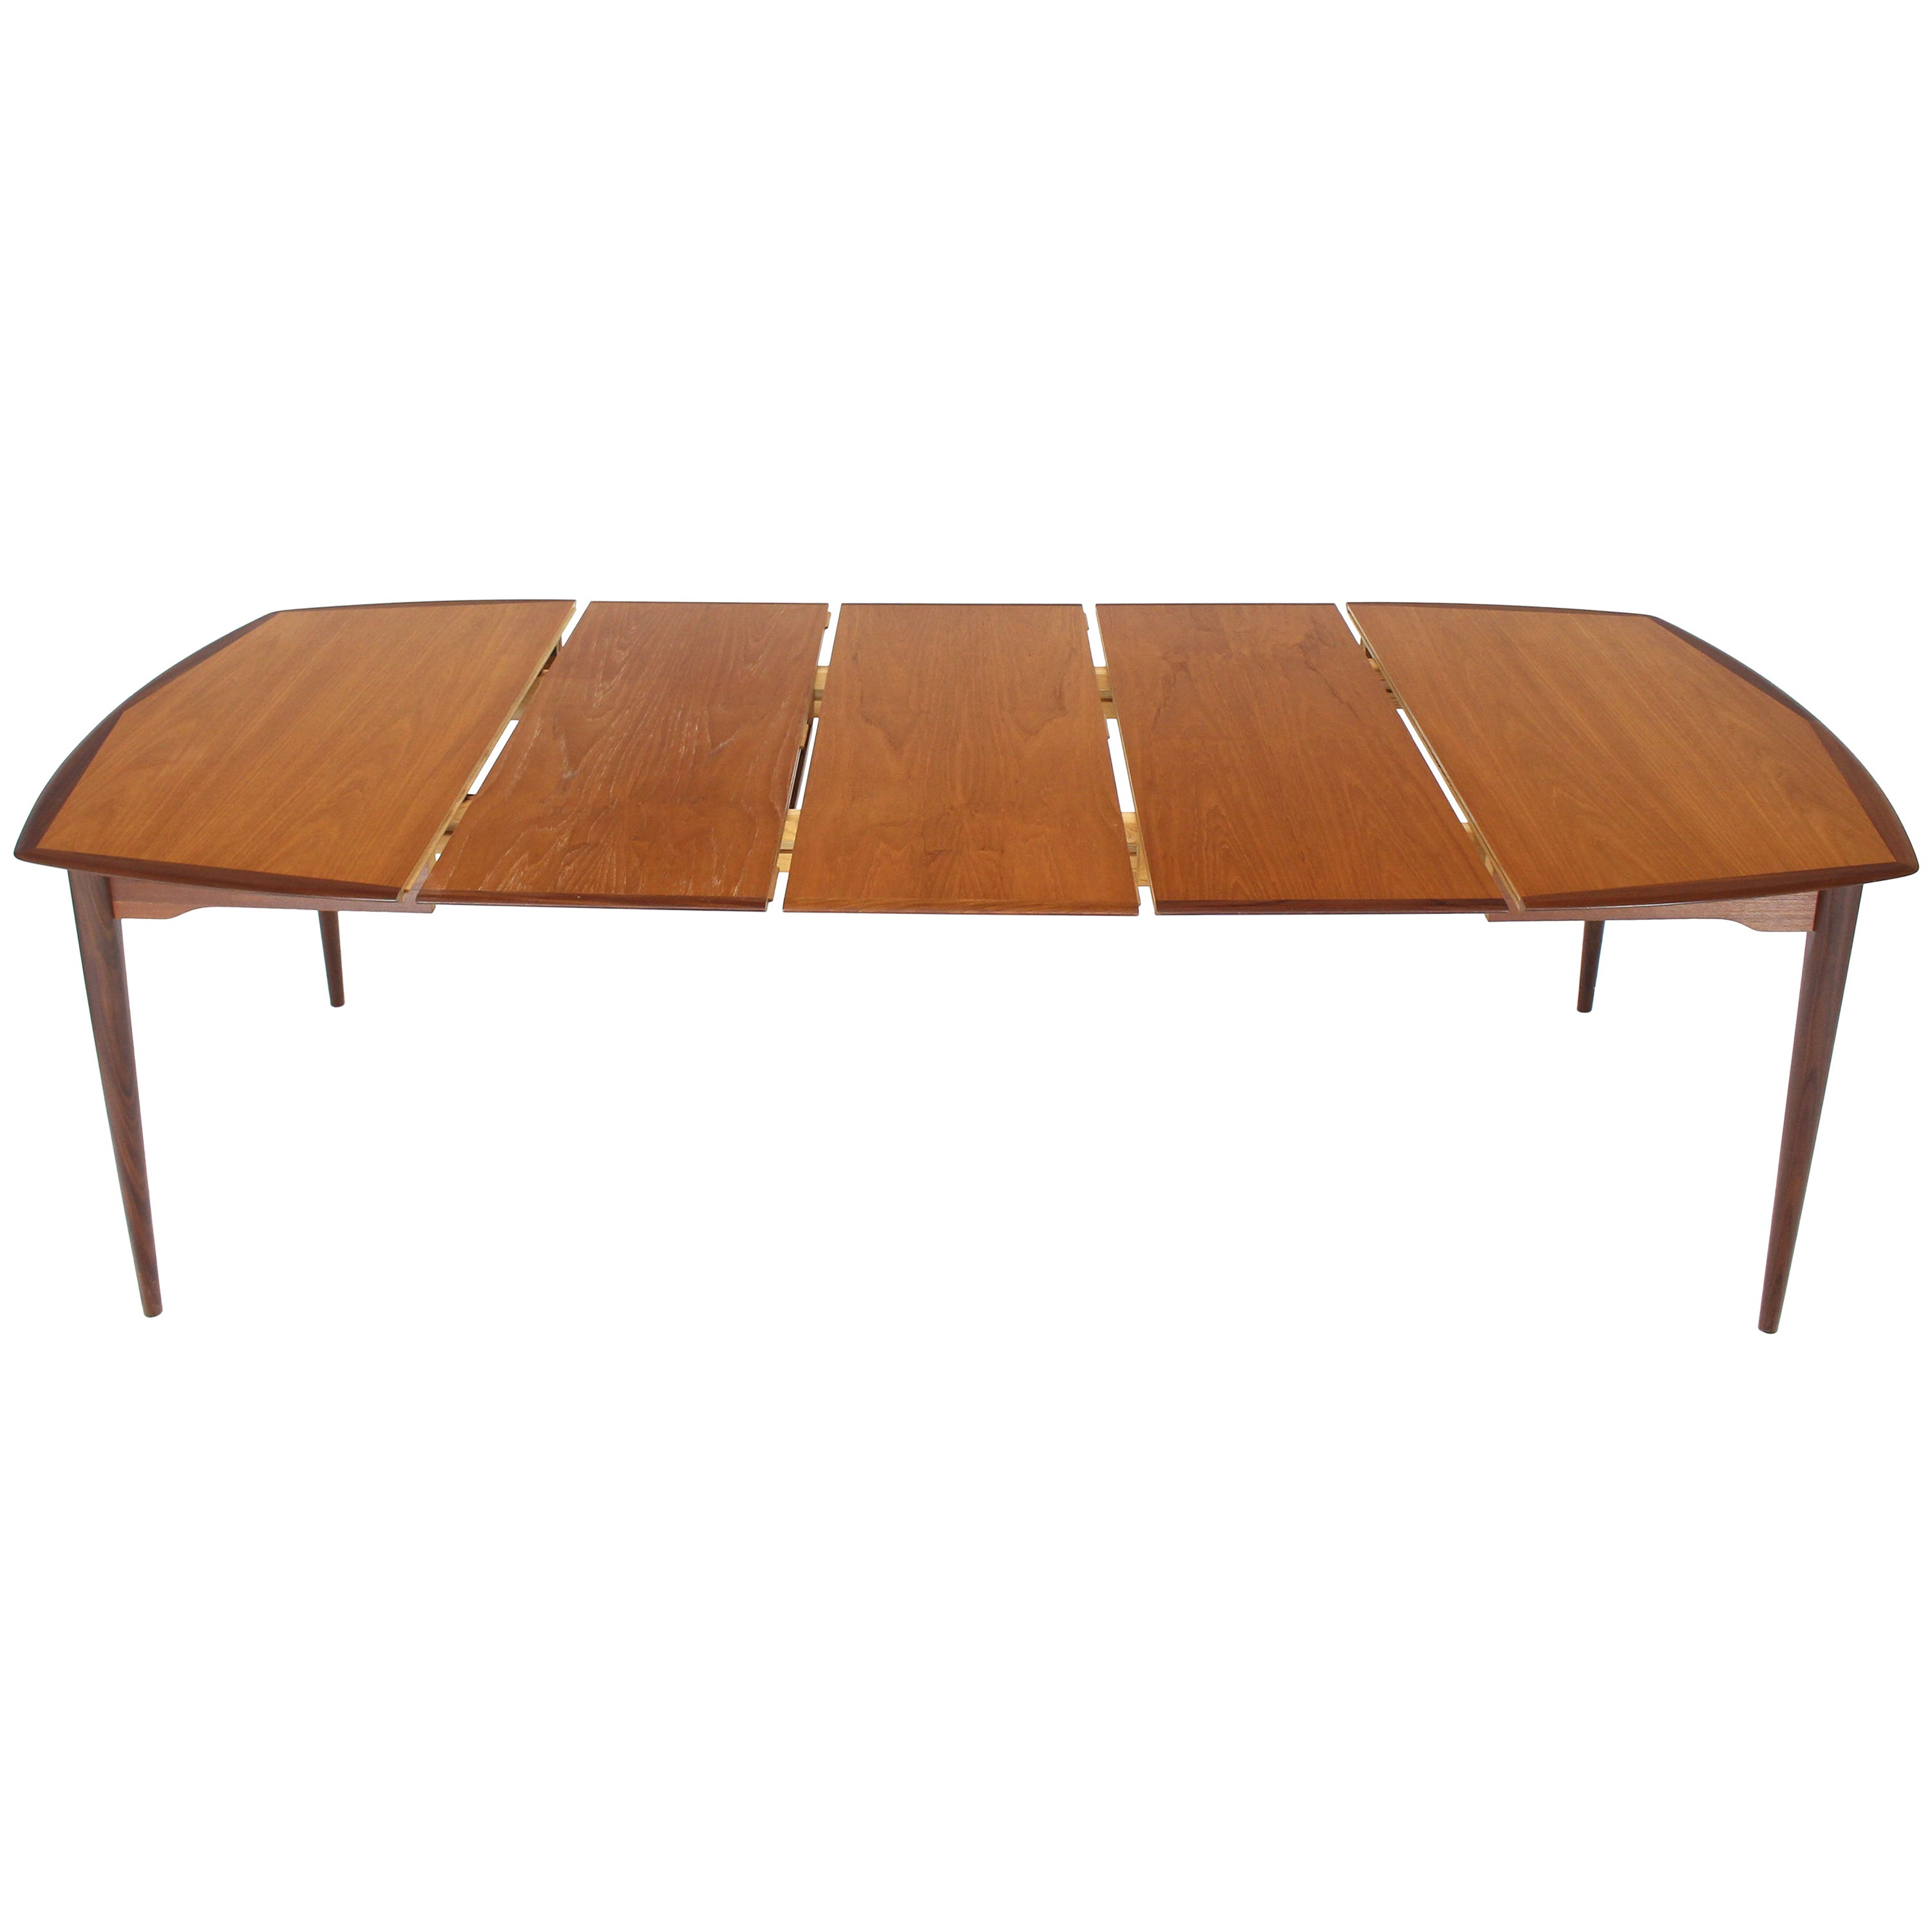 Danish Modern Square Two-Tone Teak Dining Table with 3 Leaves